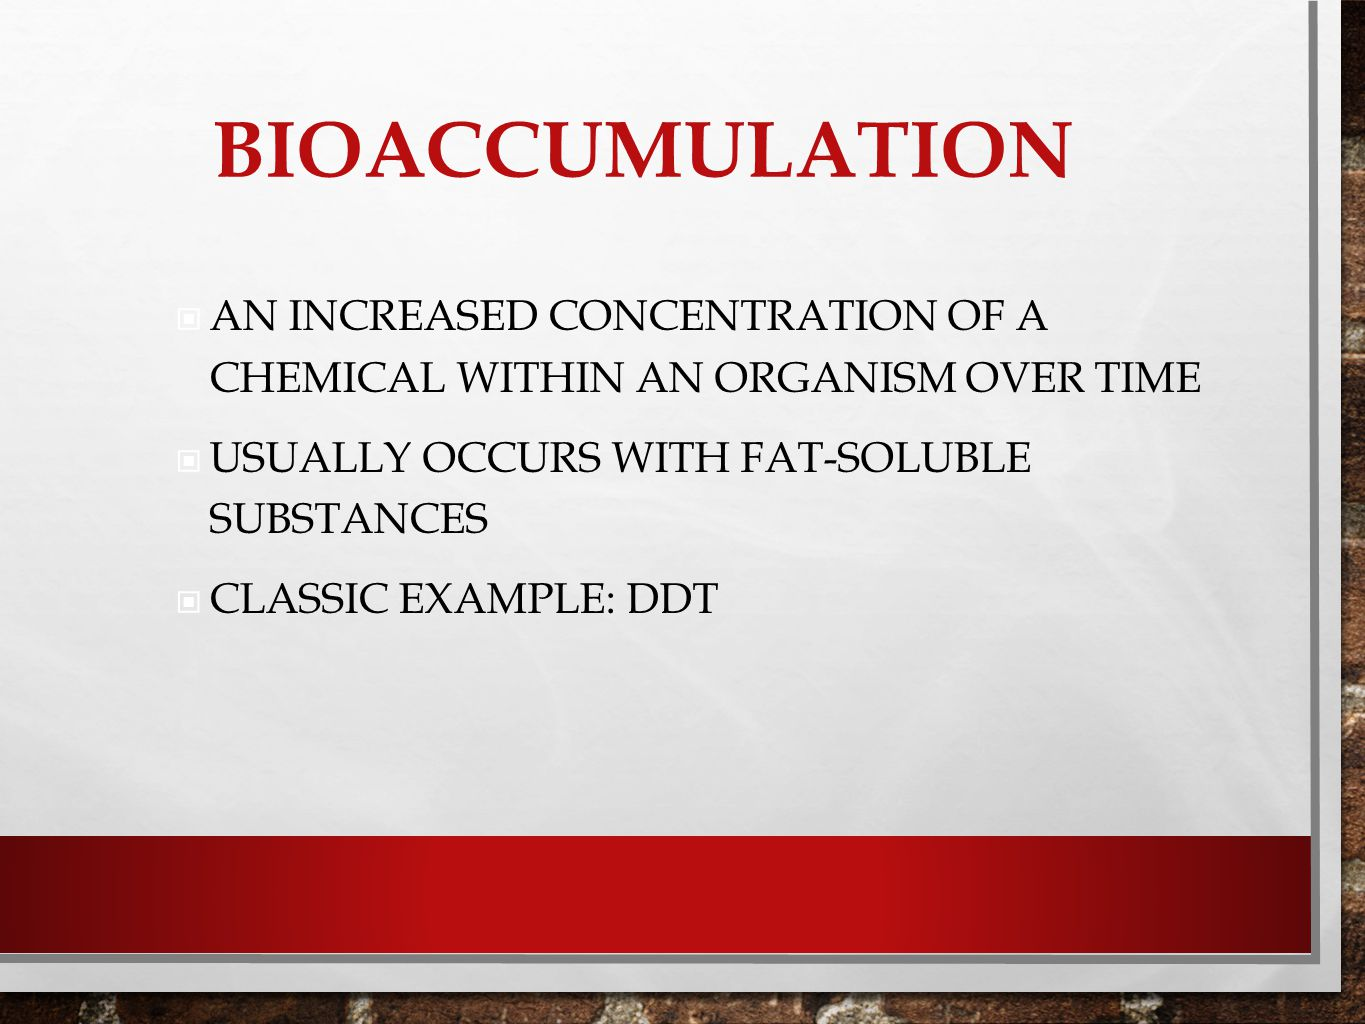 Bioaccumulation An increased concentration of a chemical within an organism over time. Usually occurs with fat-soluble substances.